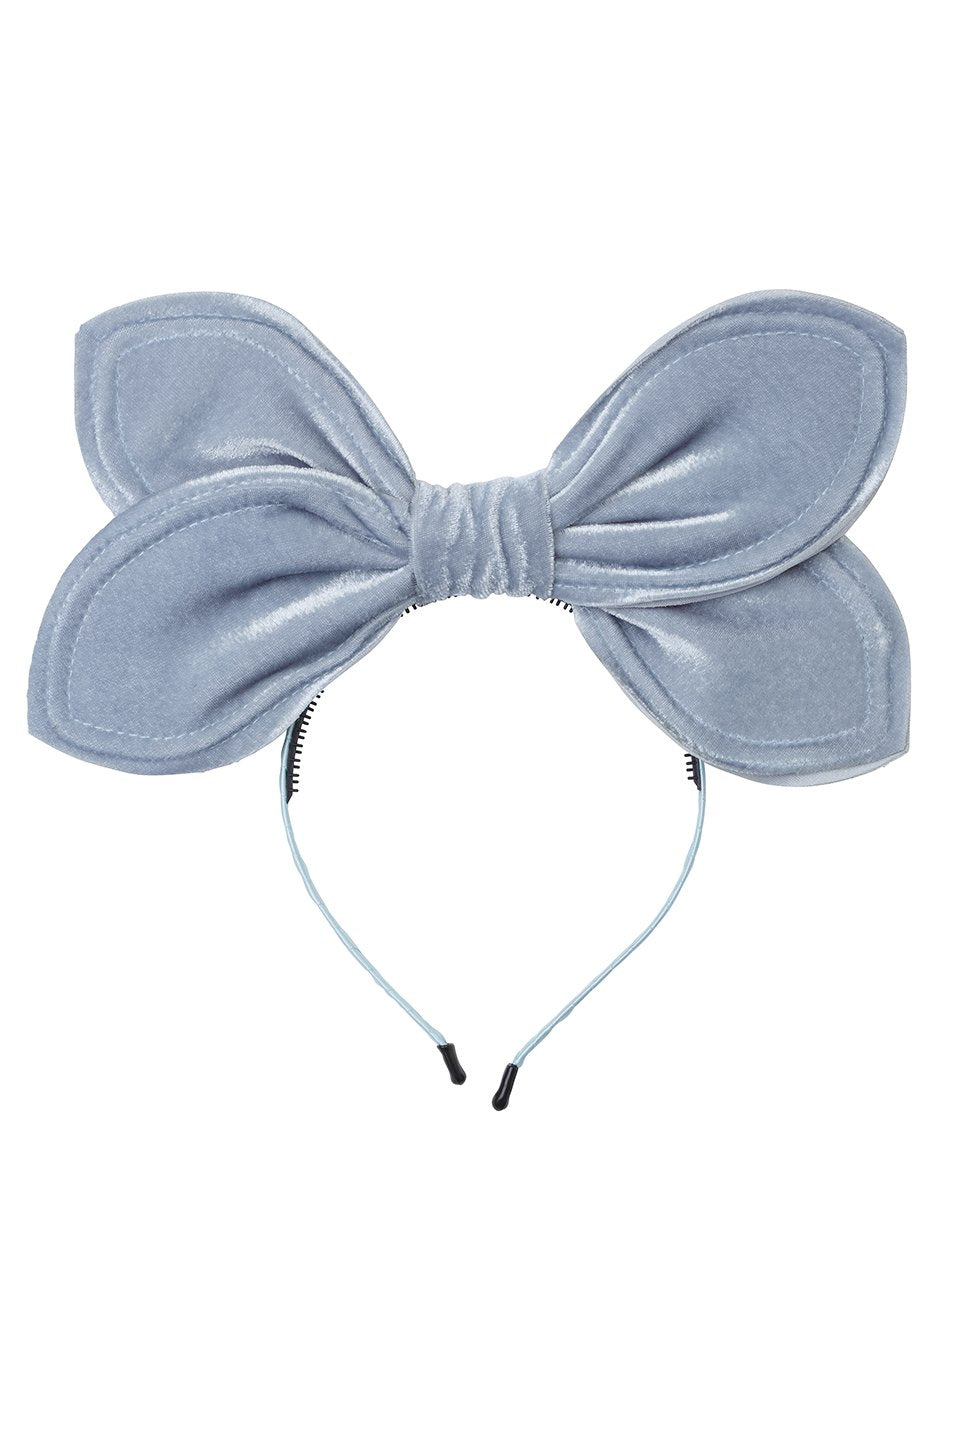 Growing Orchid Velvet Headband - Antique Blue - PROJECT 6, modest fashion